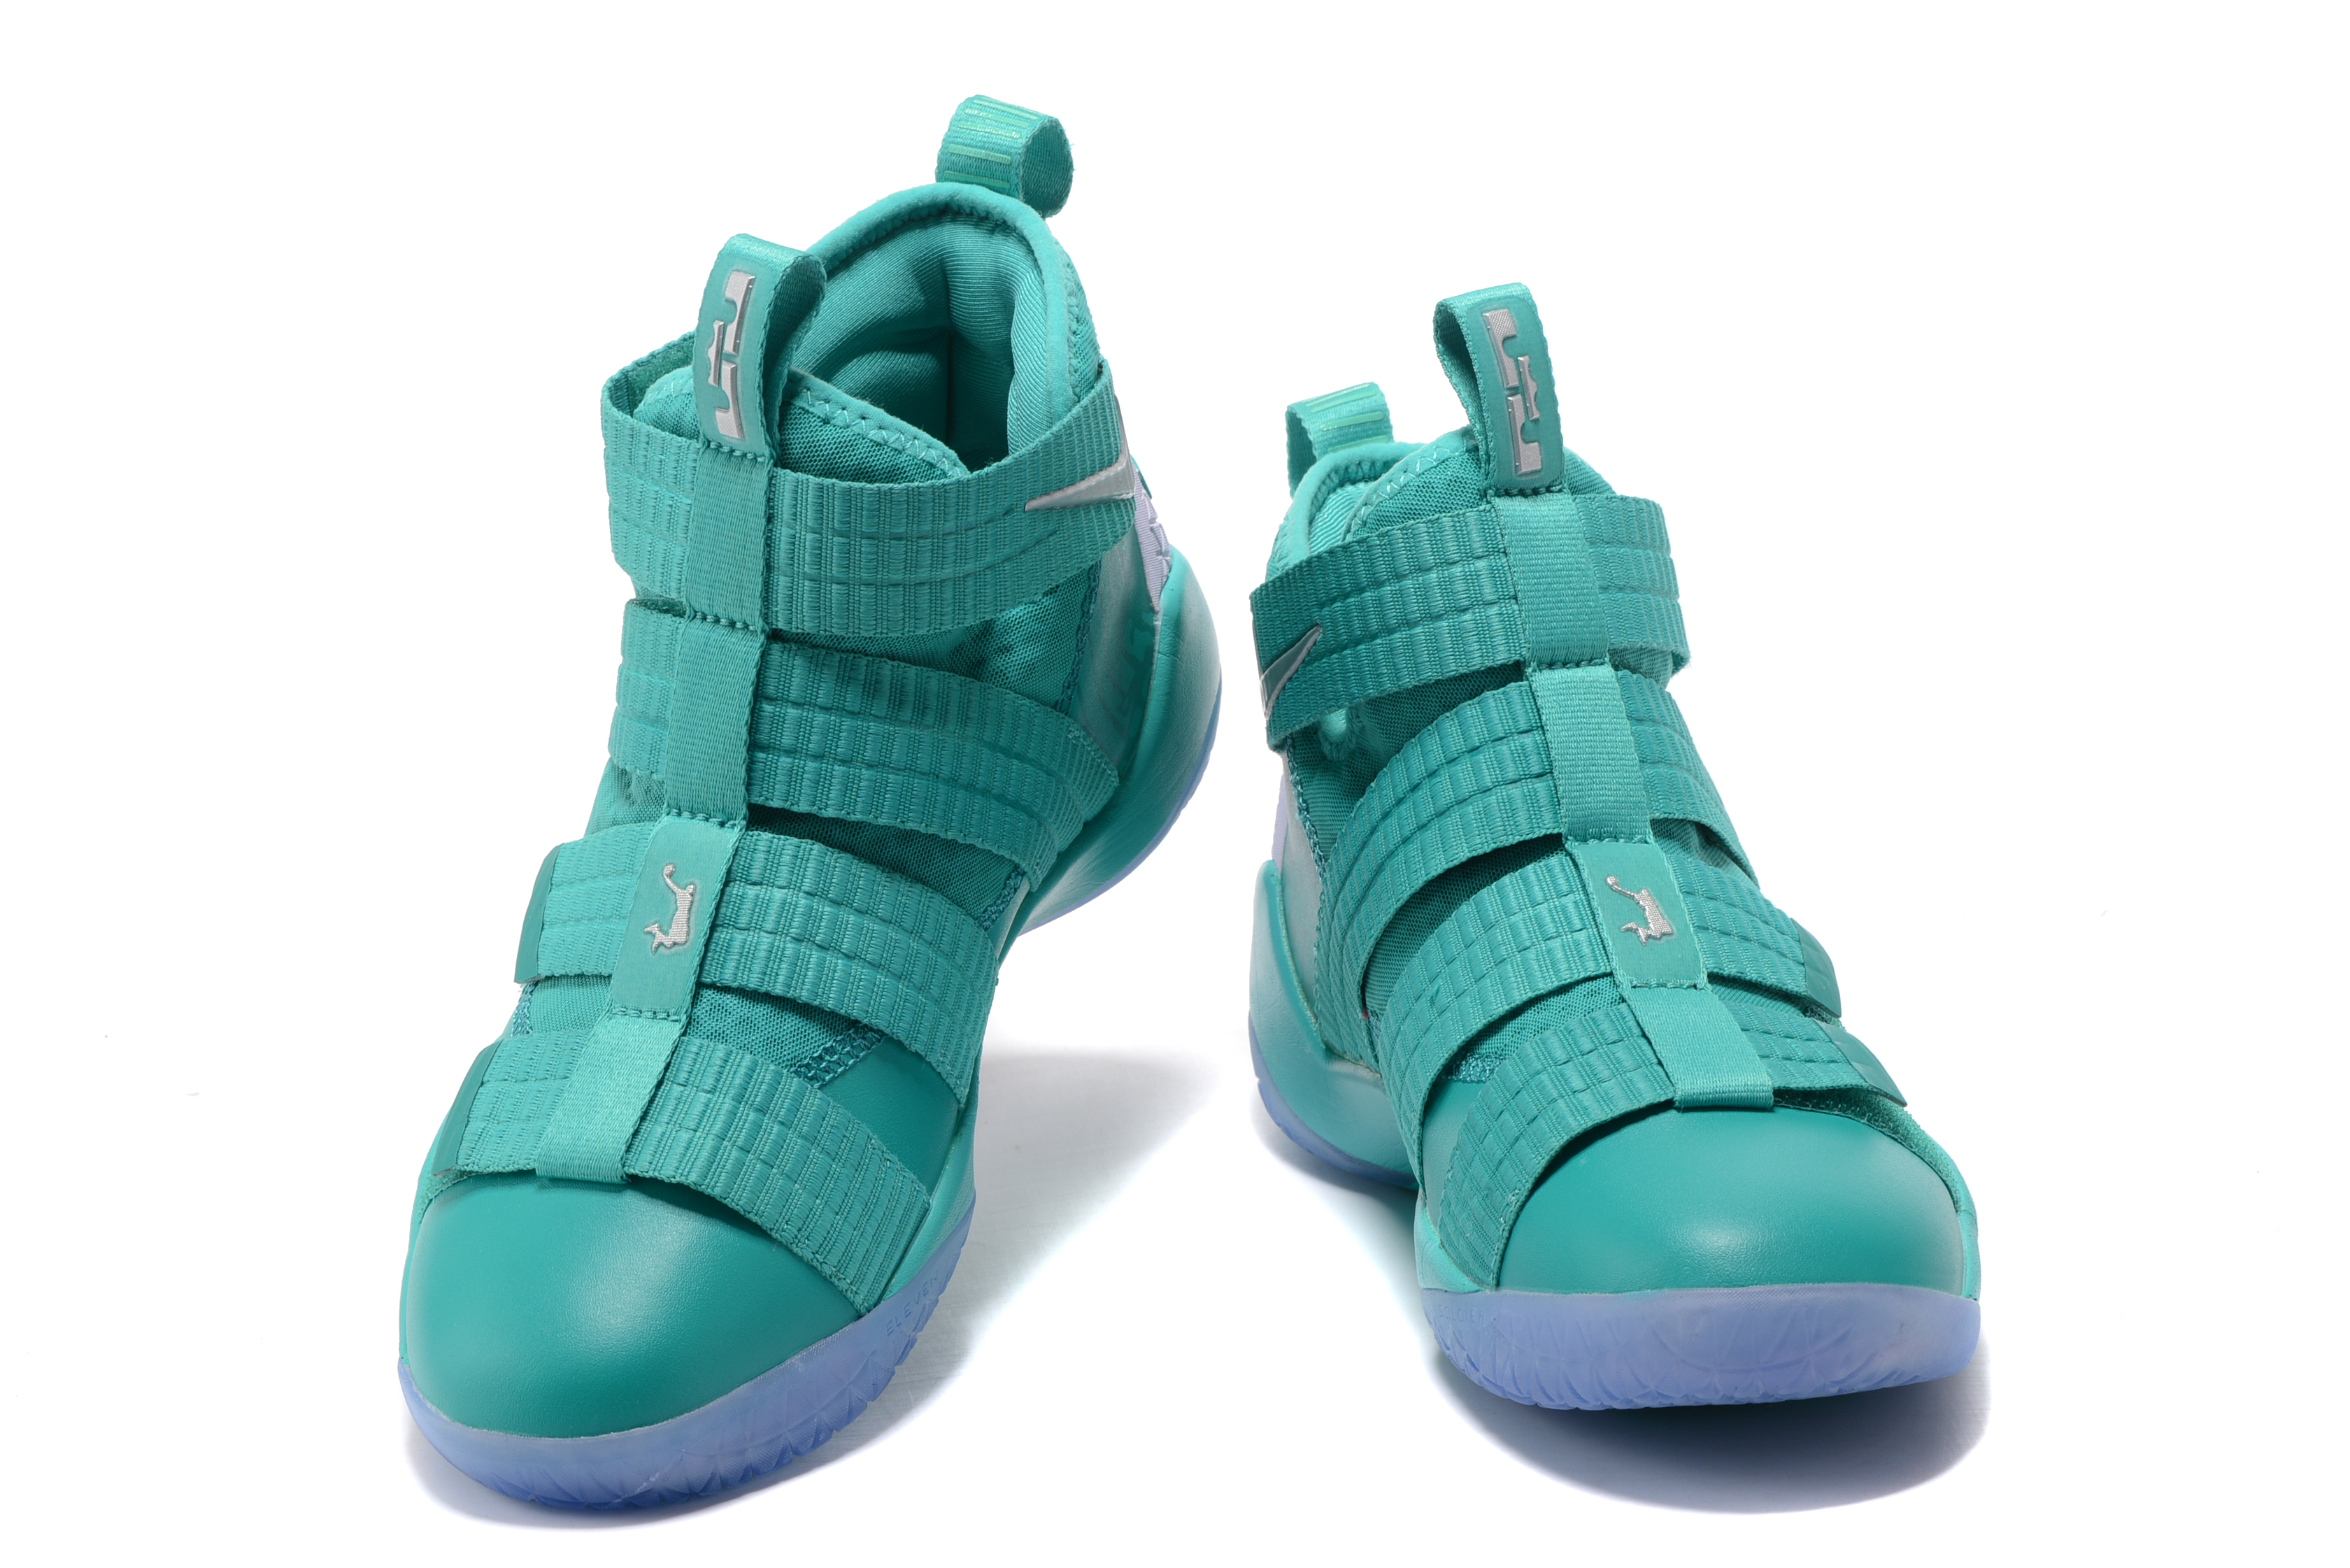 Nike Lebron Solider 11 All Stars Basktabll Shoes